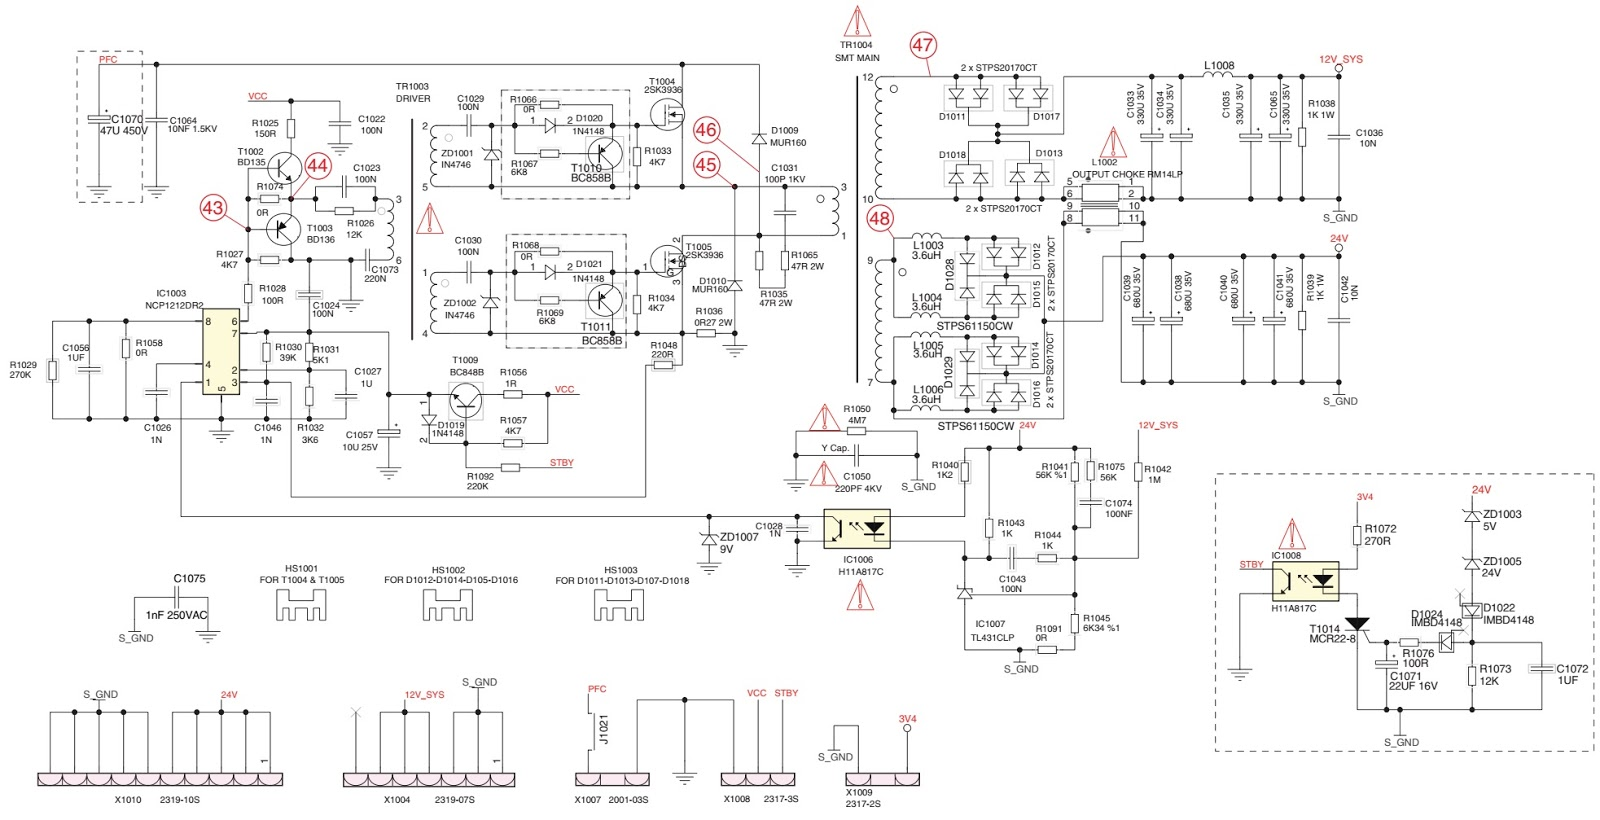 grundig lcd tv smps schematics circuit diagrams electronic figure 2 block diagram of an lcd tv power supply [ 1600 x 820 Pixel ]